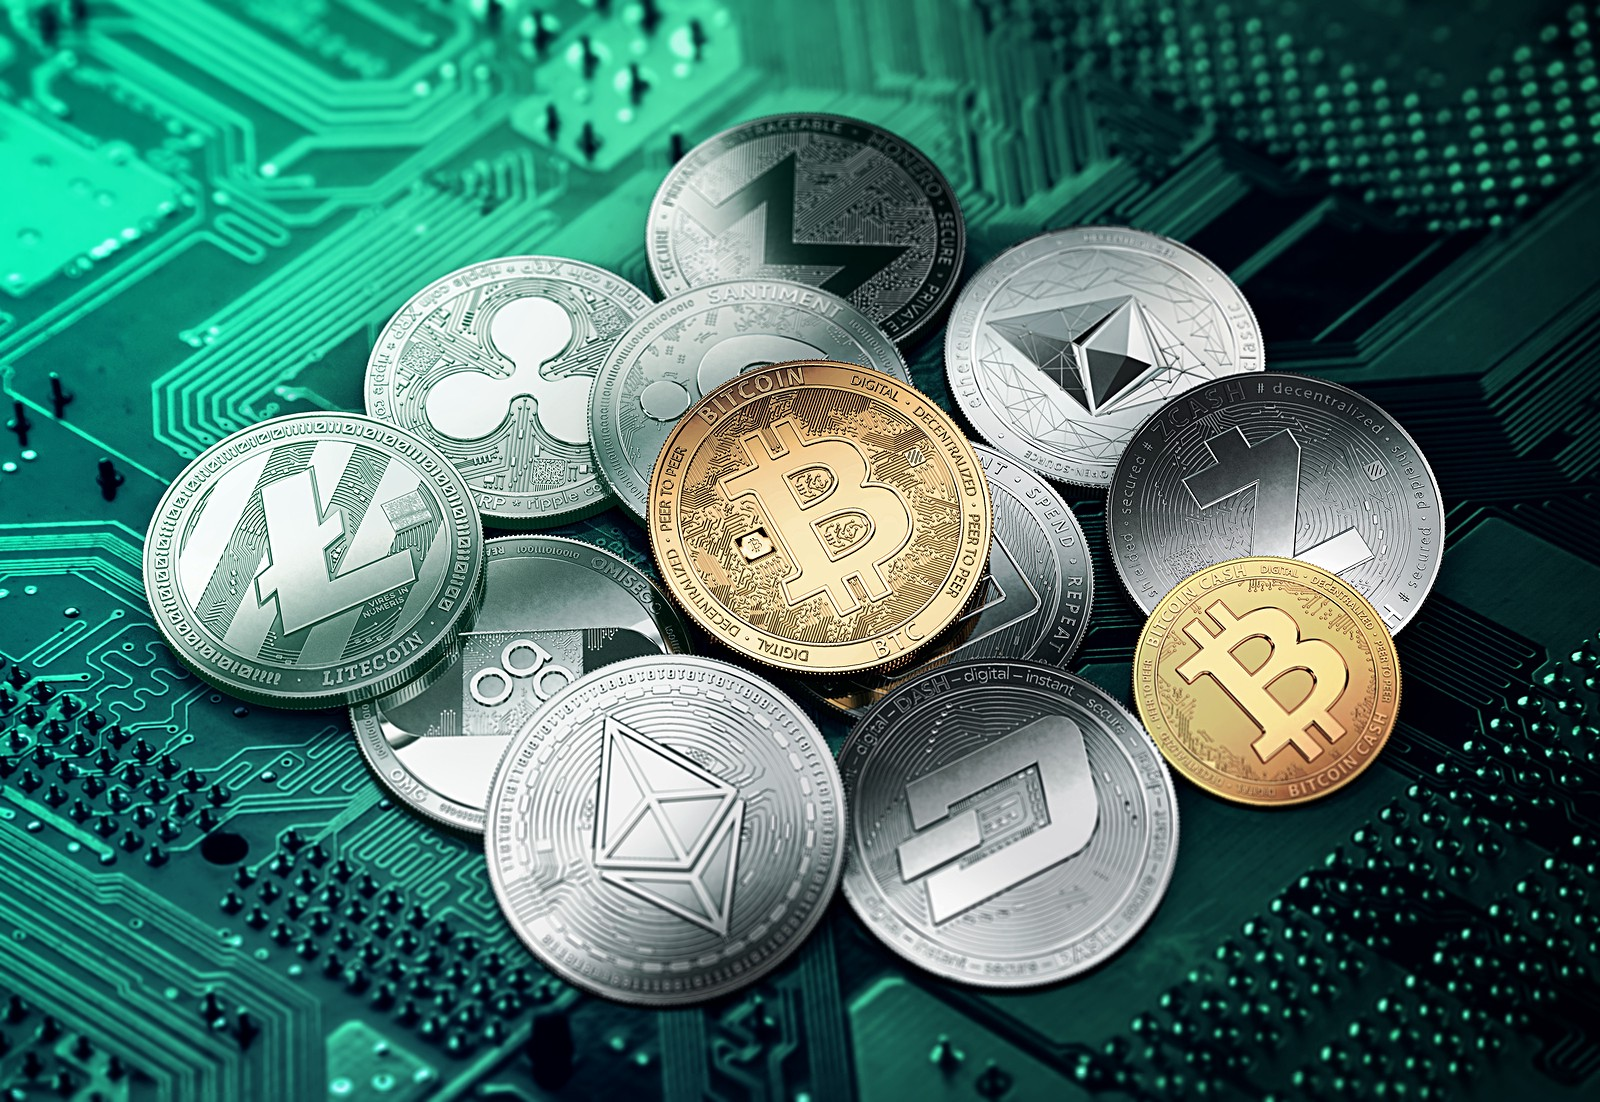 Scam alert: Positive cryptocurrency reviews are for sale | TechSpot